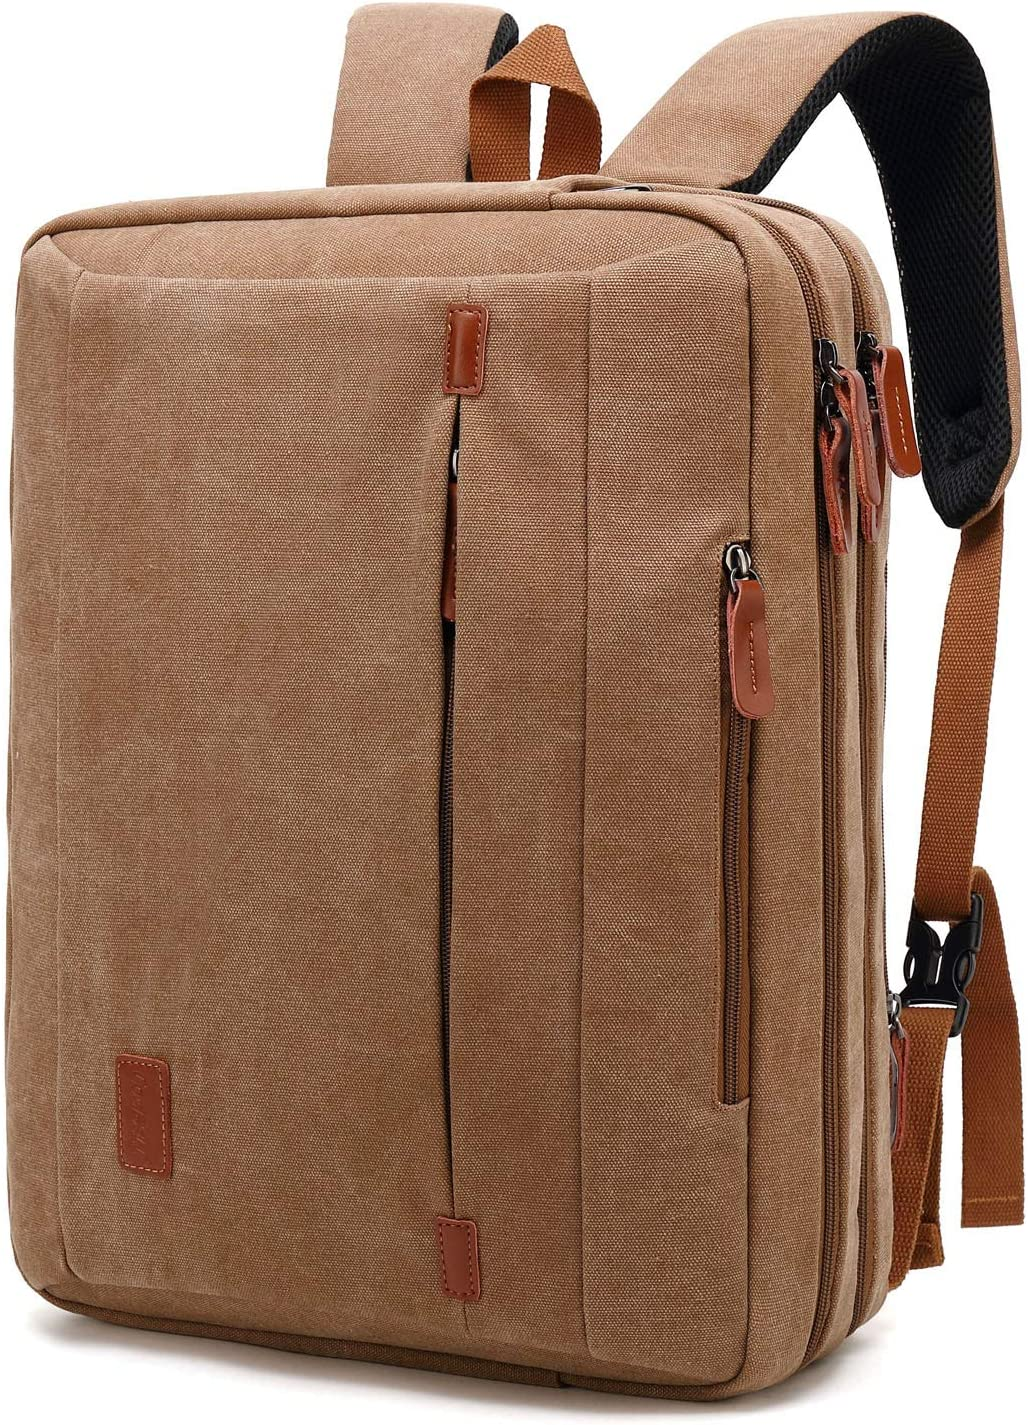 CoolBELL 17.3 Inches Convertible Laptop Messenger Bag Shoulder Bag Canvas Backpack Oxford Cloth Multi-Functional Briefcase for Laptop/MacBook/Tablet (Canvas Khaki)